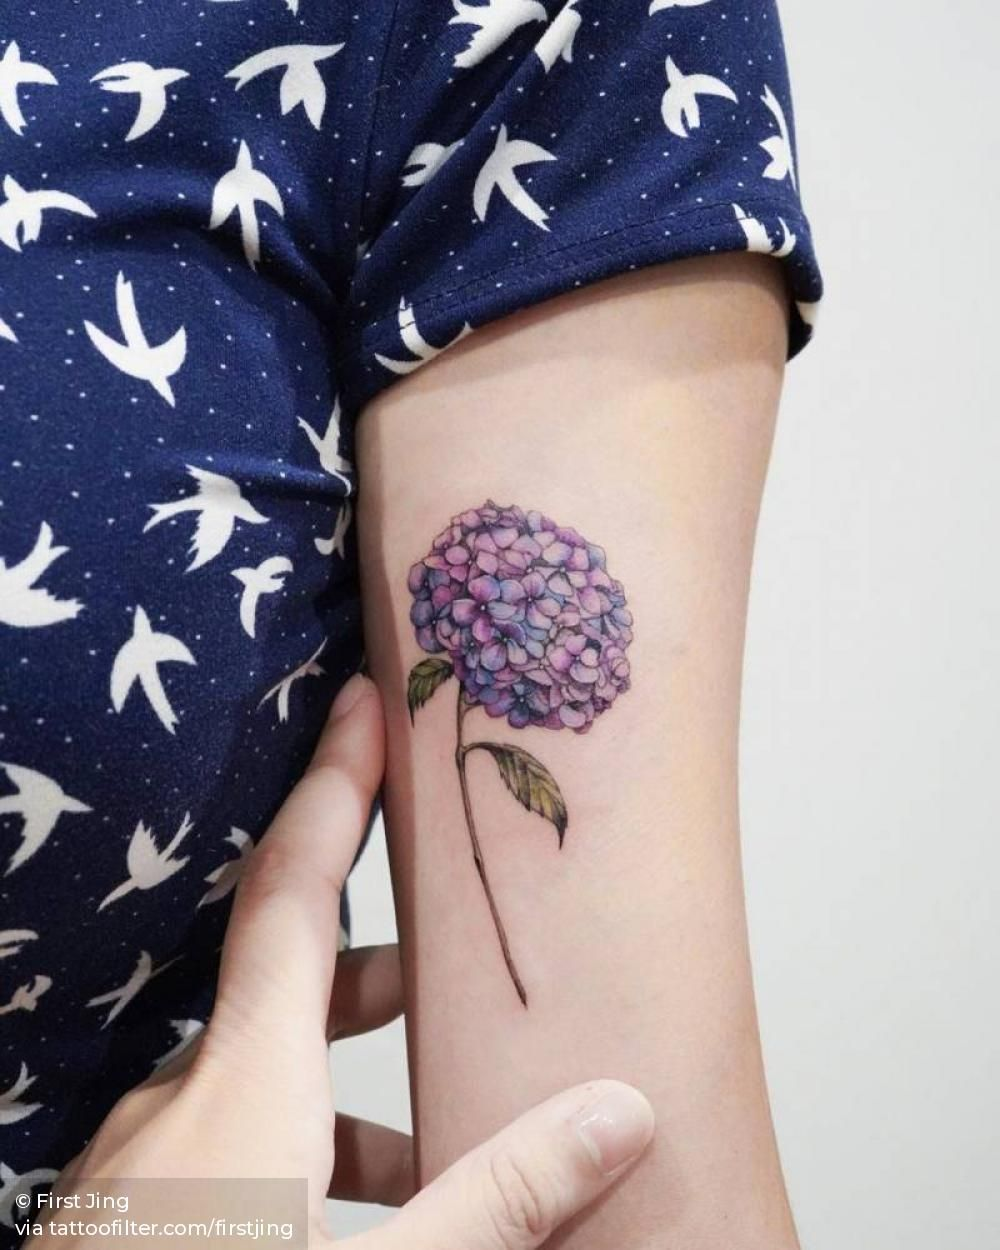 The Hydrangea Flower Is For Grandma Because Her Spanish Name Hortensia Means Hydrangea In 2020 Hydrangea Tattoo Tattoos Purple Tattoos